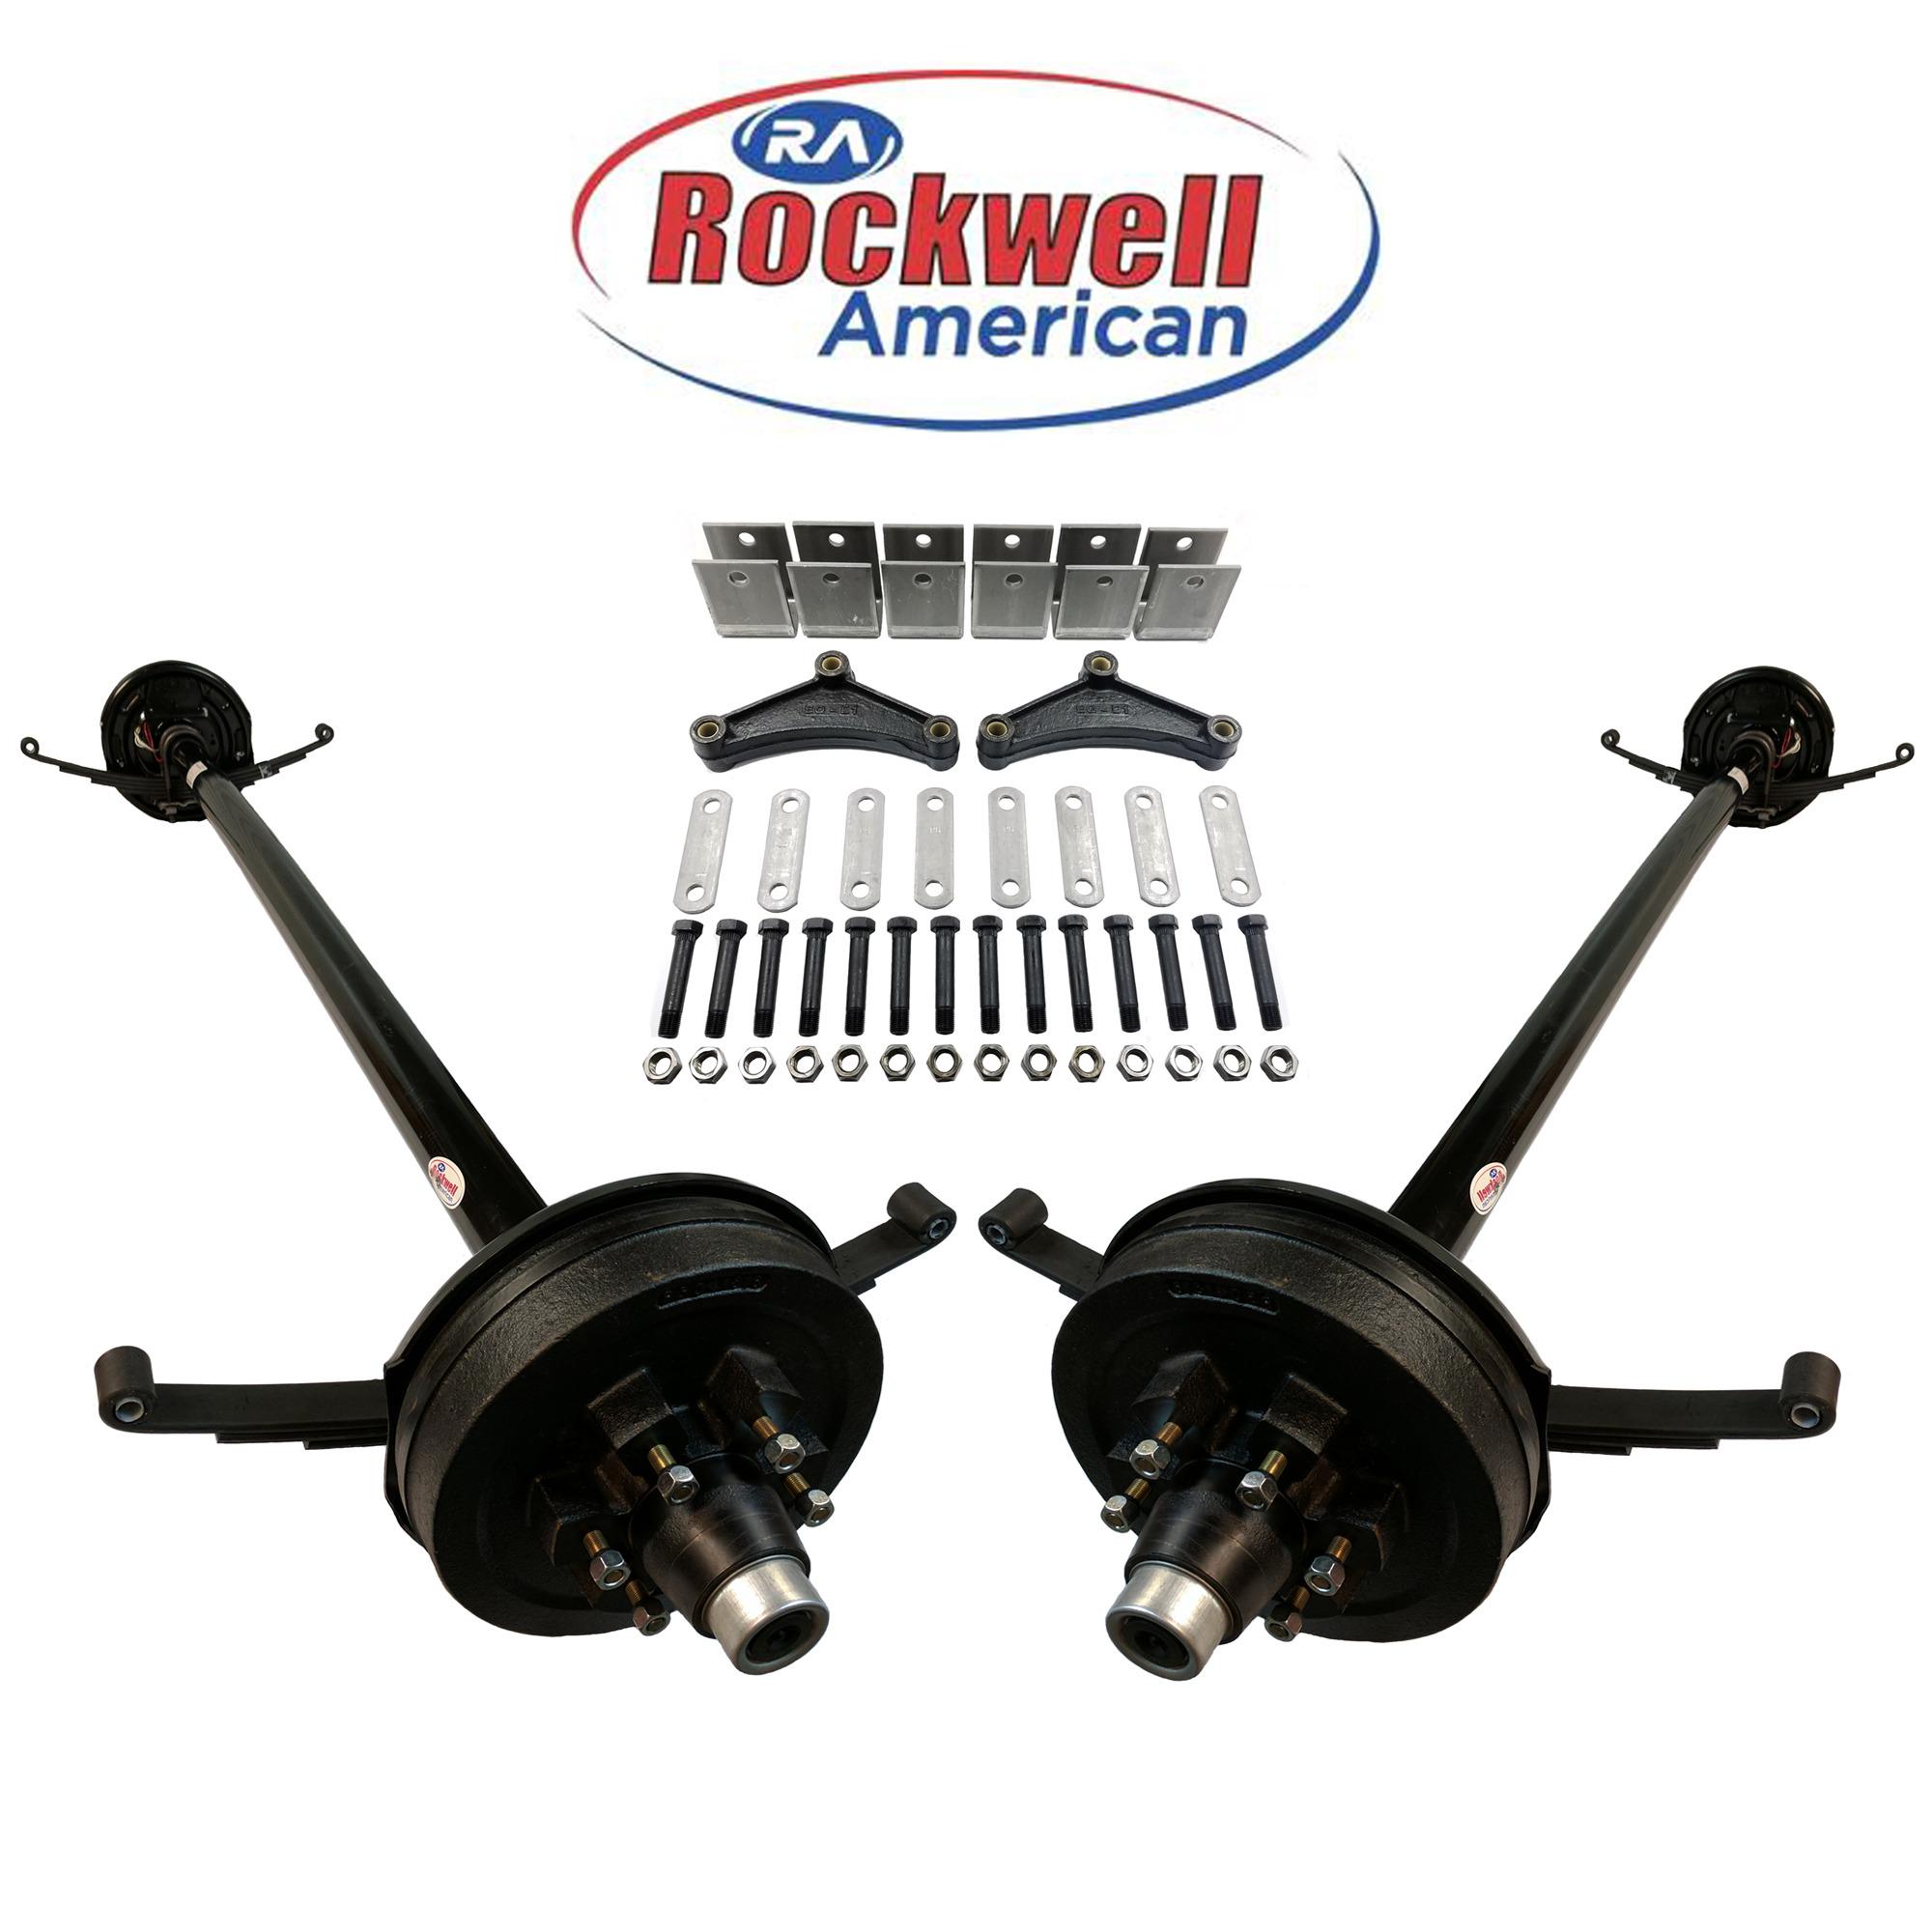 Rockwell American Trailer Axles Tandem Axle Kits Parts More Double For Wiring Diagram